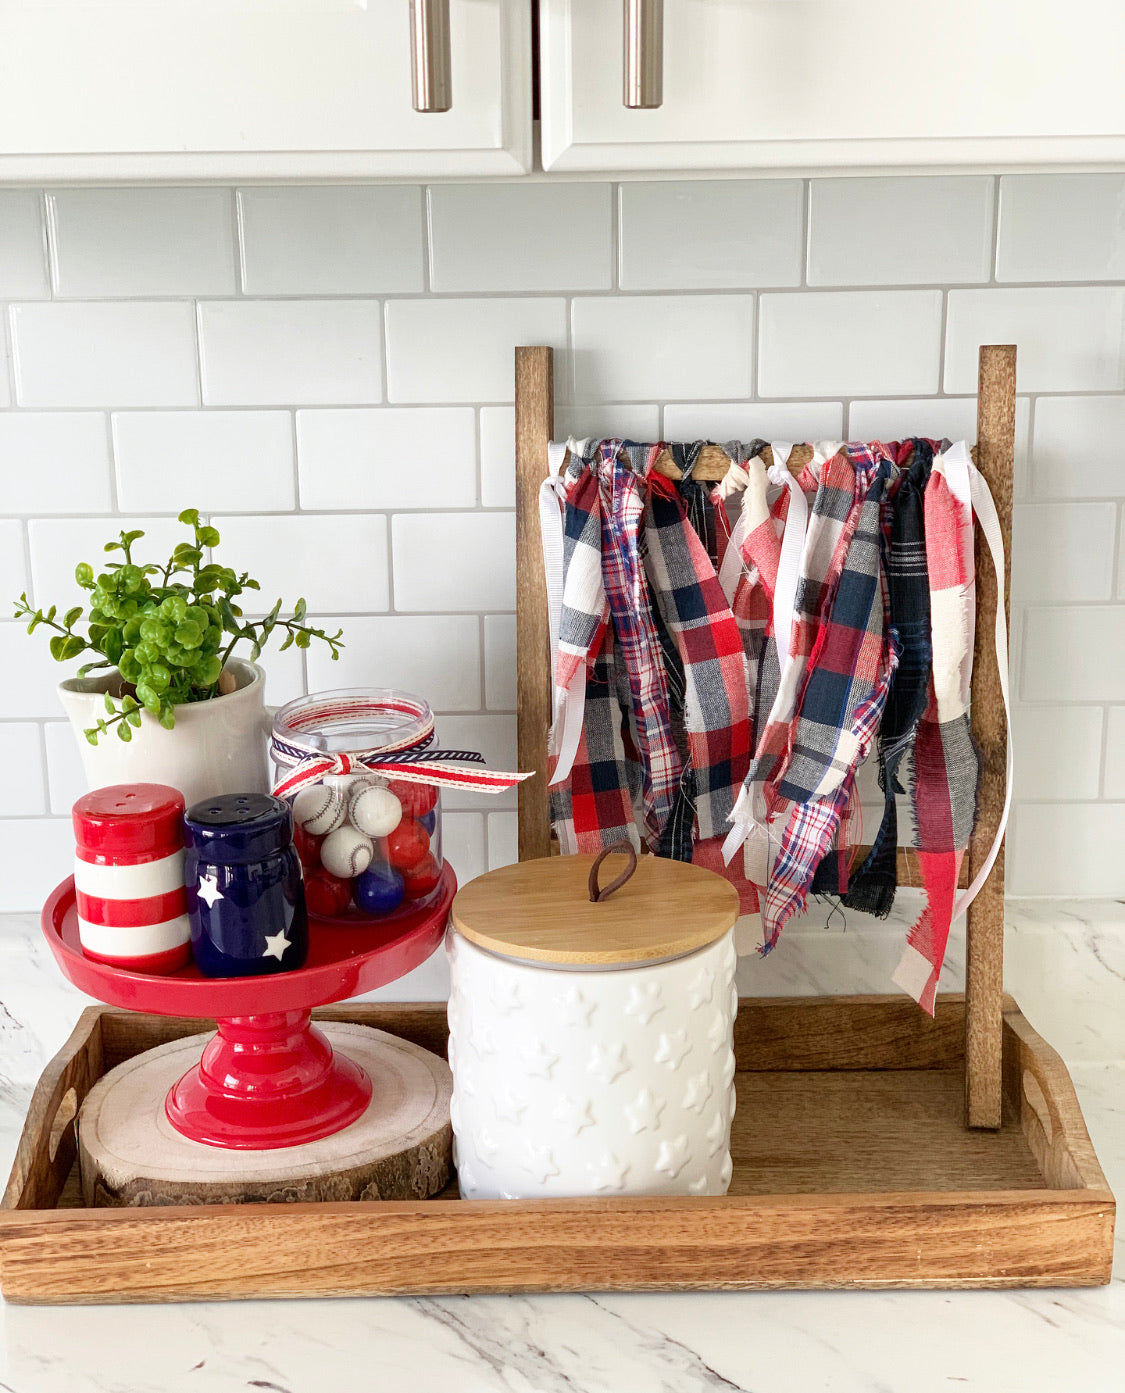 Tea Towel Ladder With Red, White and Blue Fabric